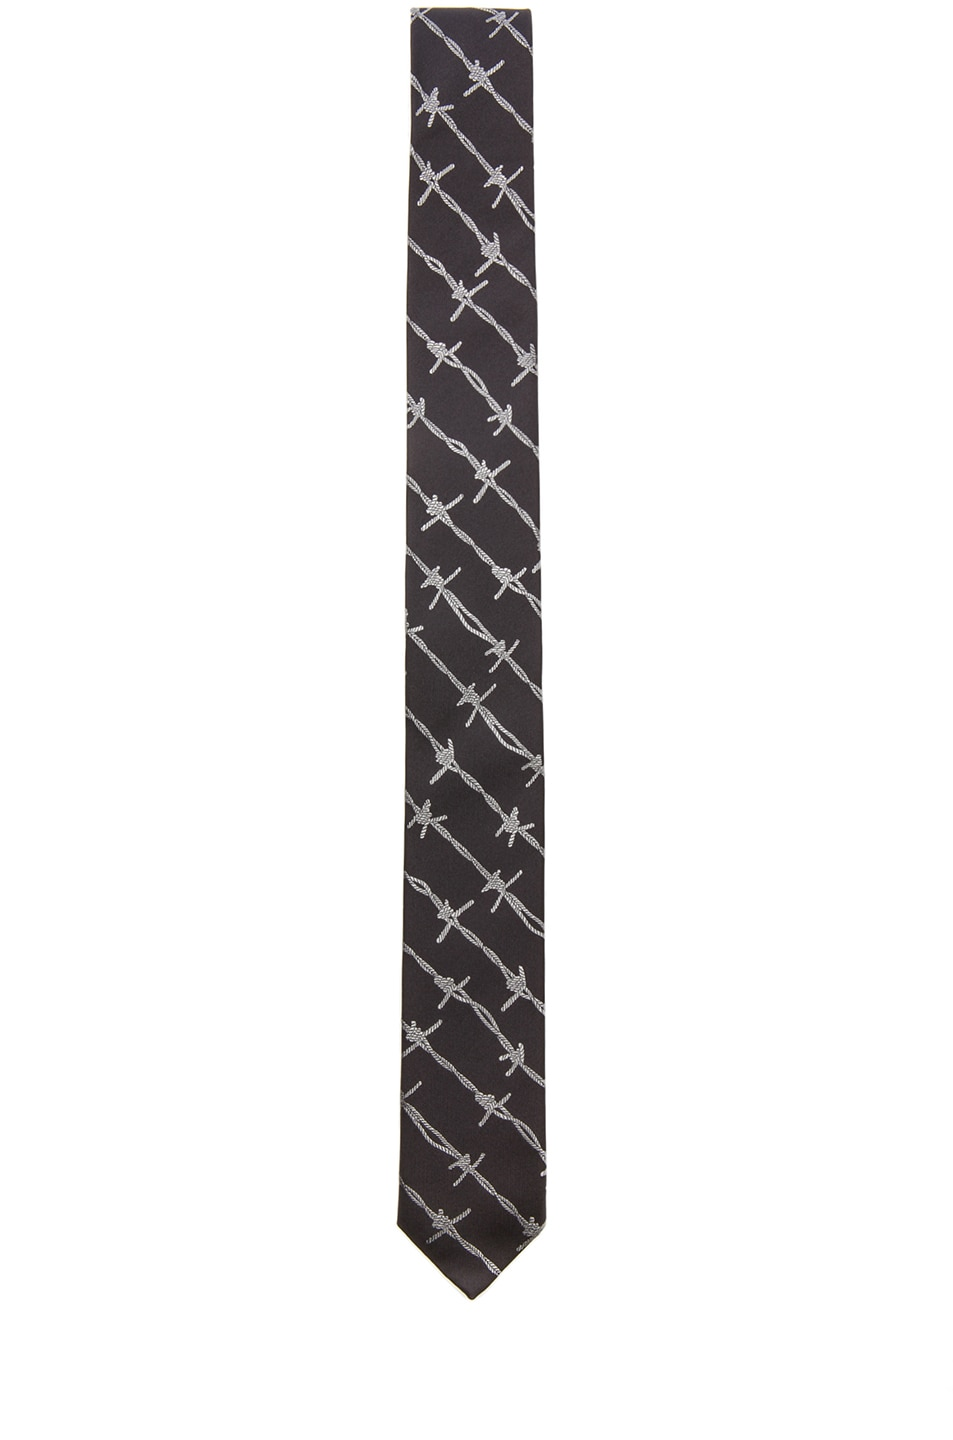 Alexander McQueen Barbed Wire Tie in Black & Light Grey | FWRD